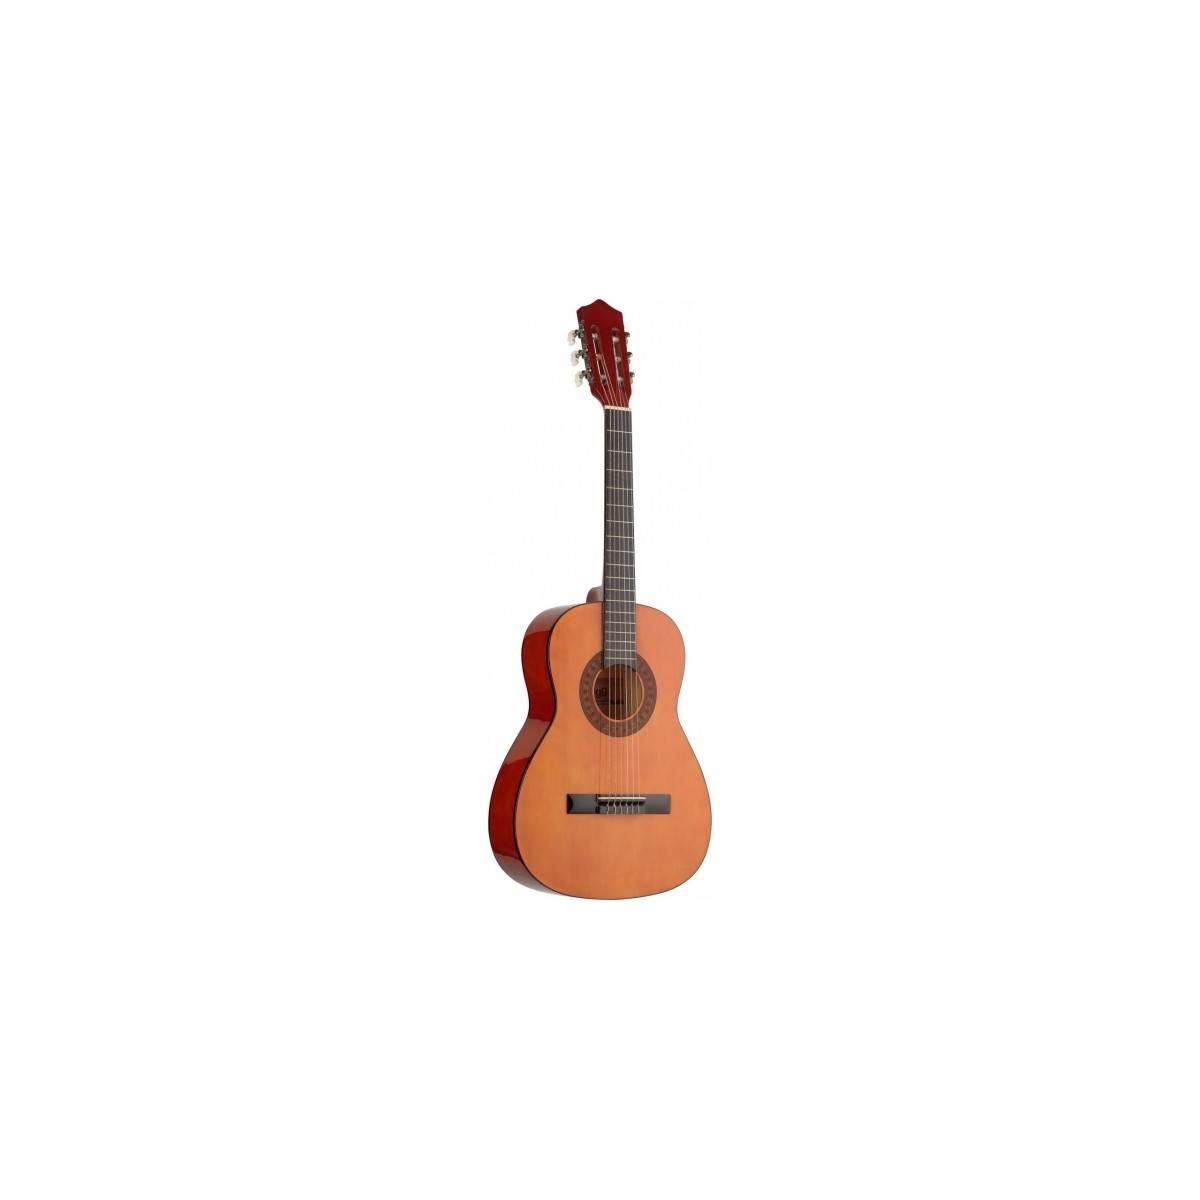 Guitare Enfant 3/4 Naturel